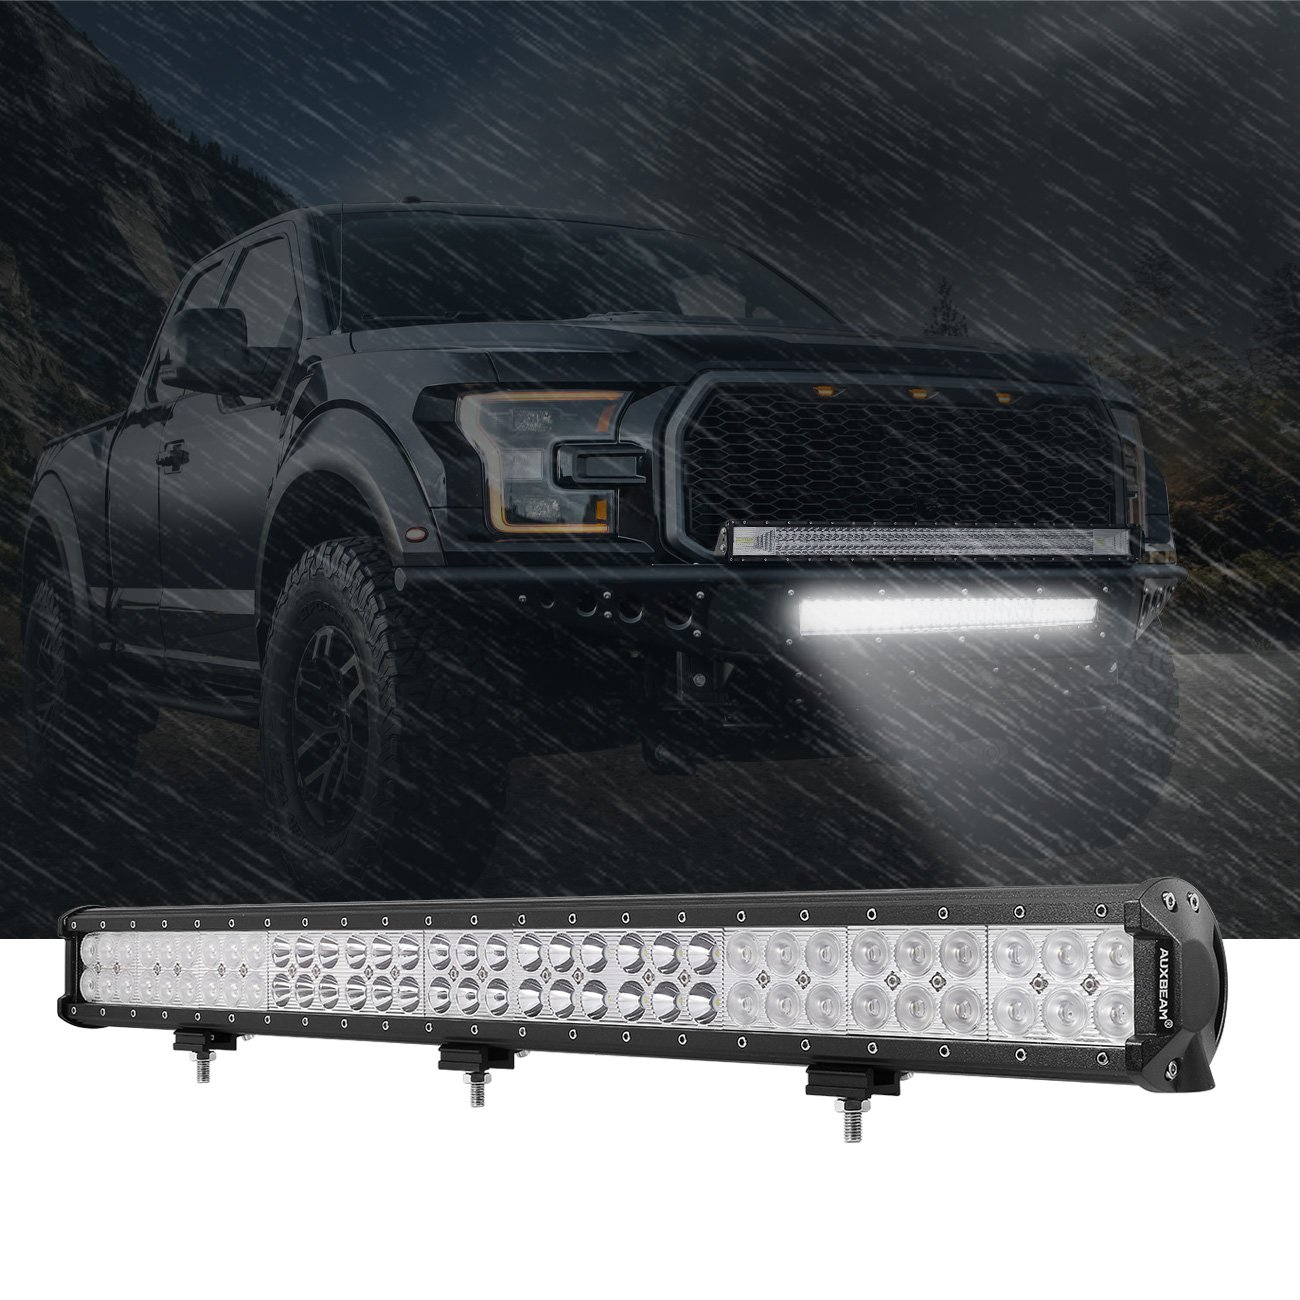 Auxbeam LED Light Bar 30 Inch LED Bar 198W Combo 66pcs 3W Led Chips Driving Light Waterproof for Off-Road Truck 4x4 Military Mining Boating Farming and Heavy Equipment by Auxbeam (Image #6)